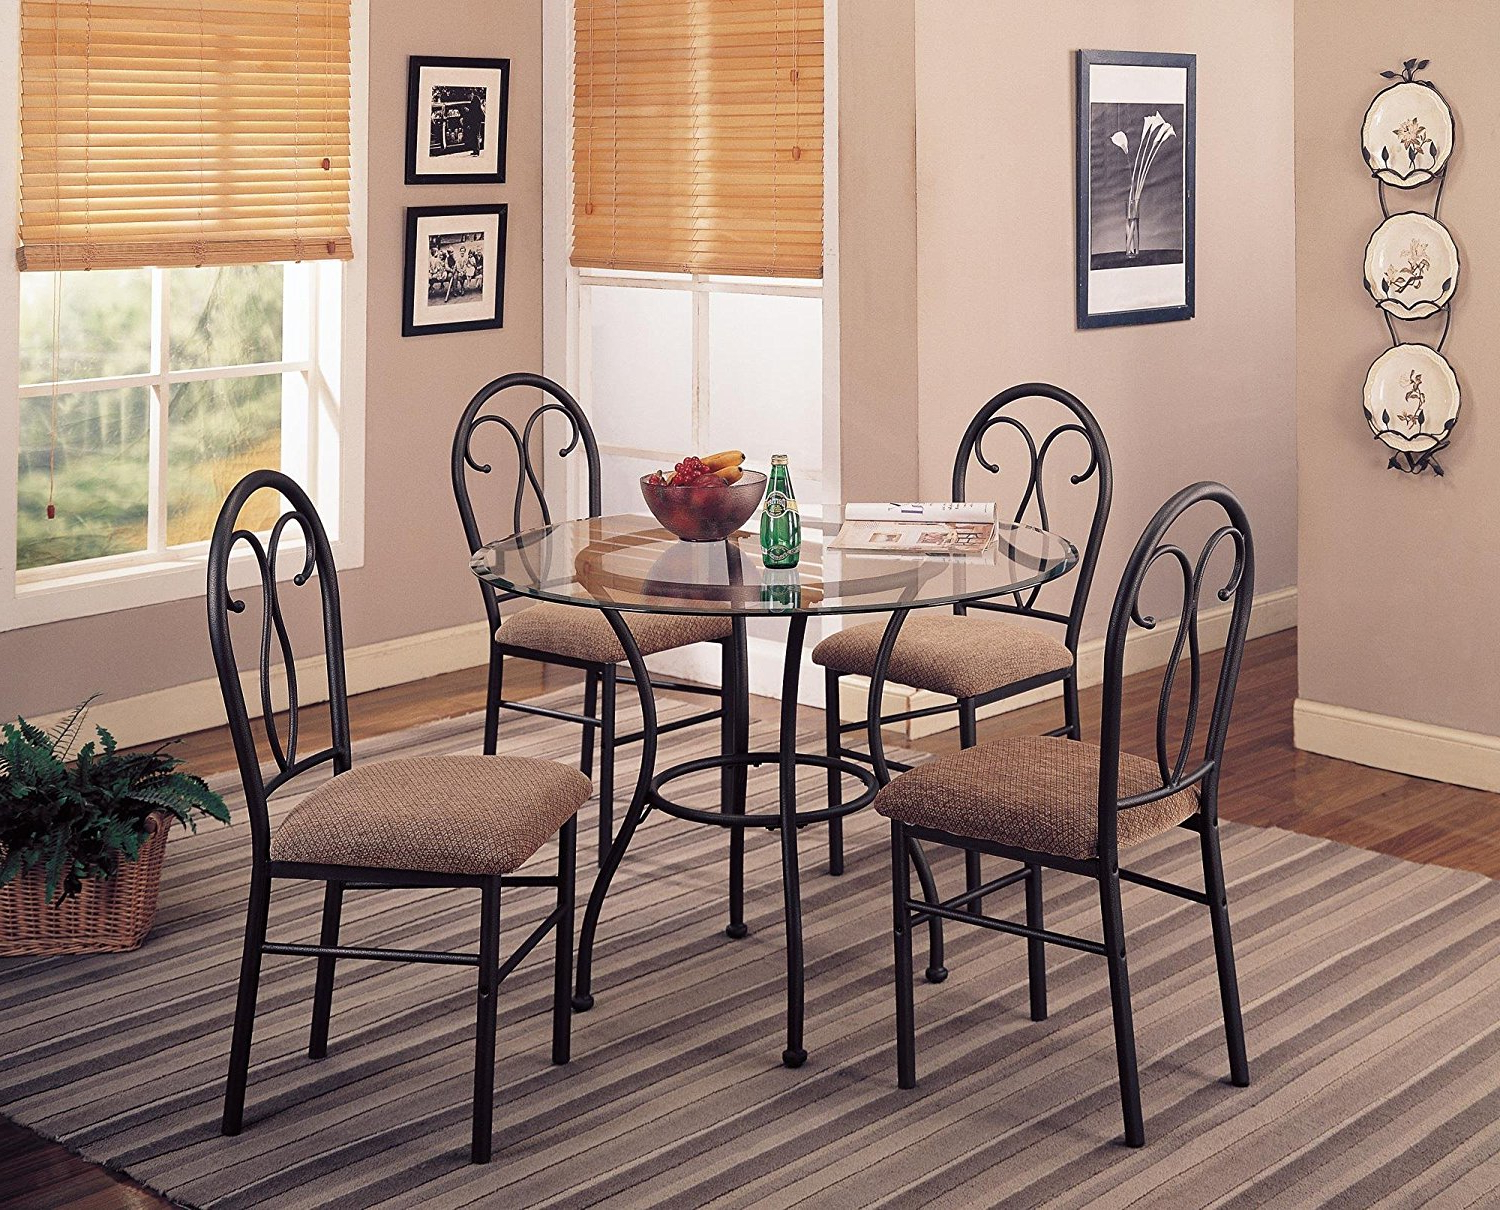 Coaster Contemporary 6 Seating Rectangular Casual Dining Tables In Best And Newest Cheap Coaster Dining Chairs, Find Coaster Dining Chairs (View 5 of 30)